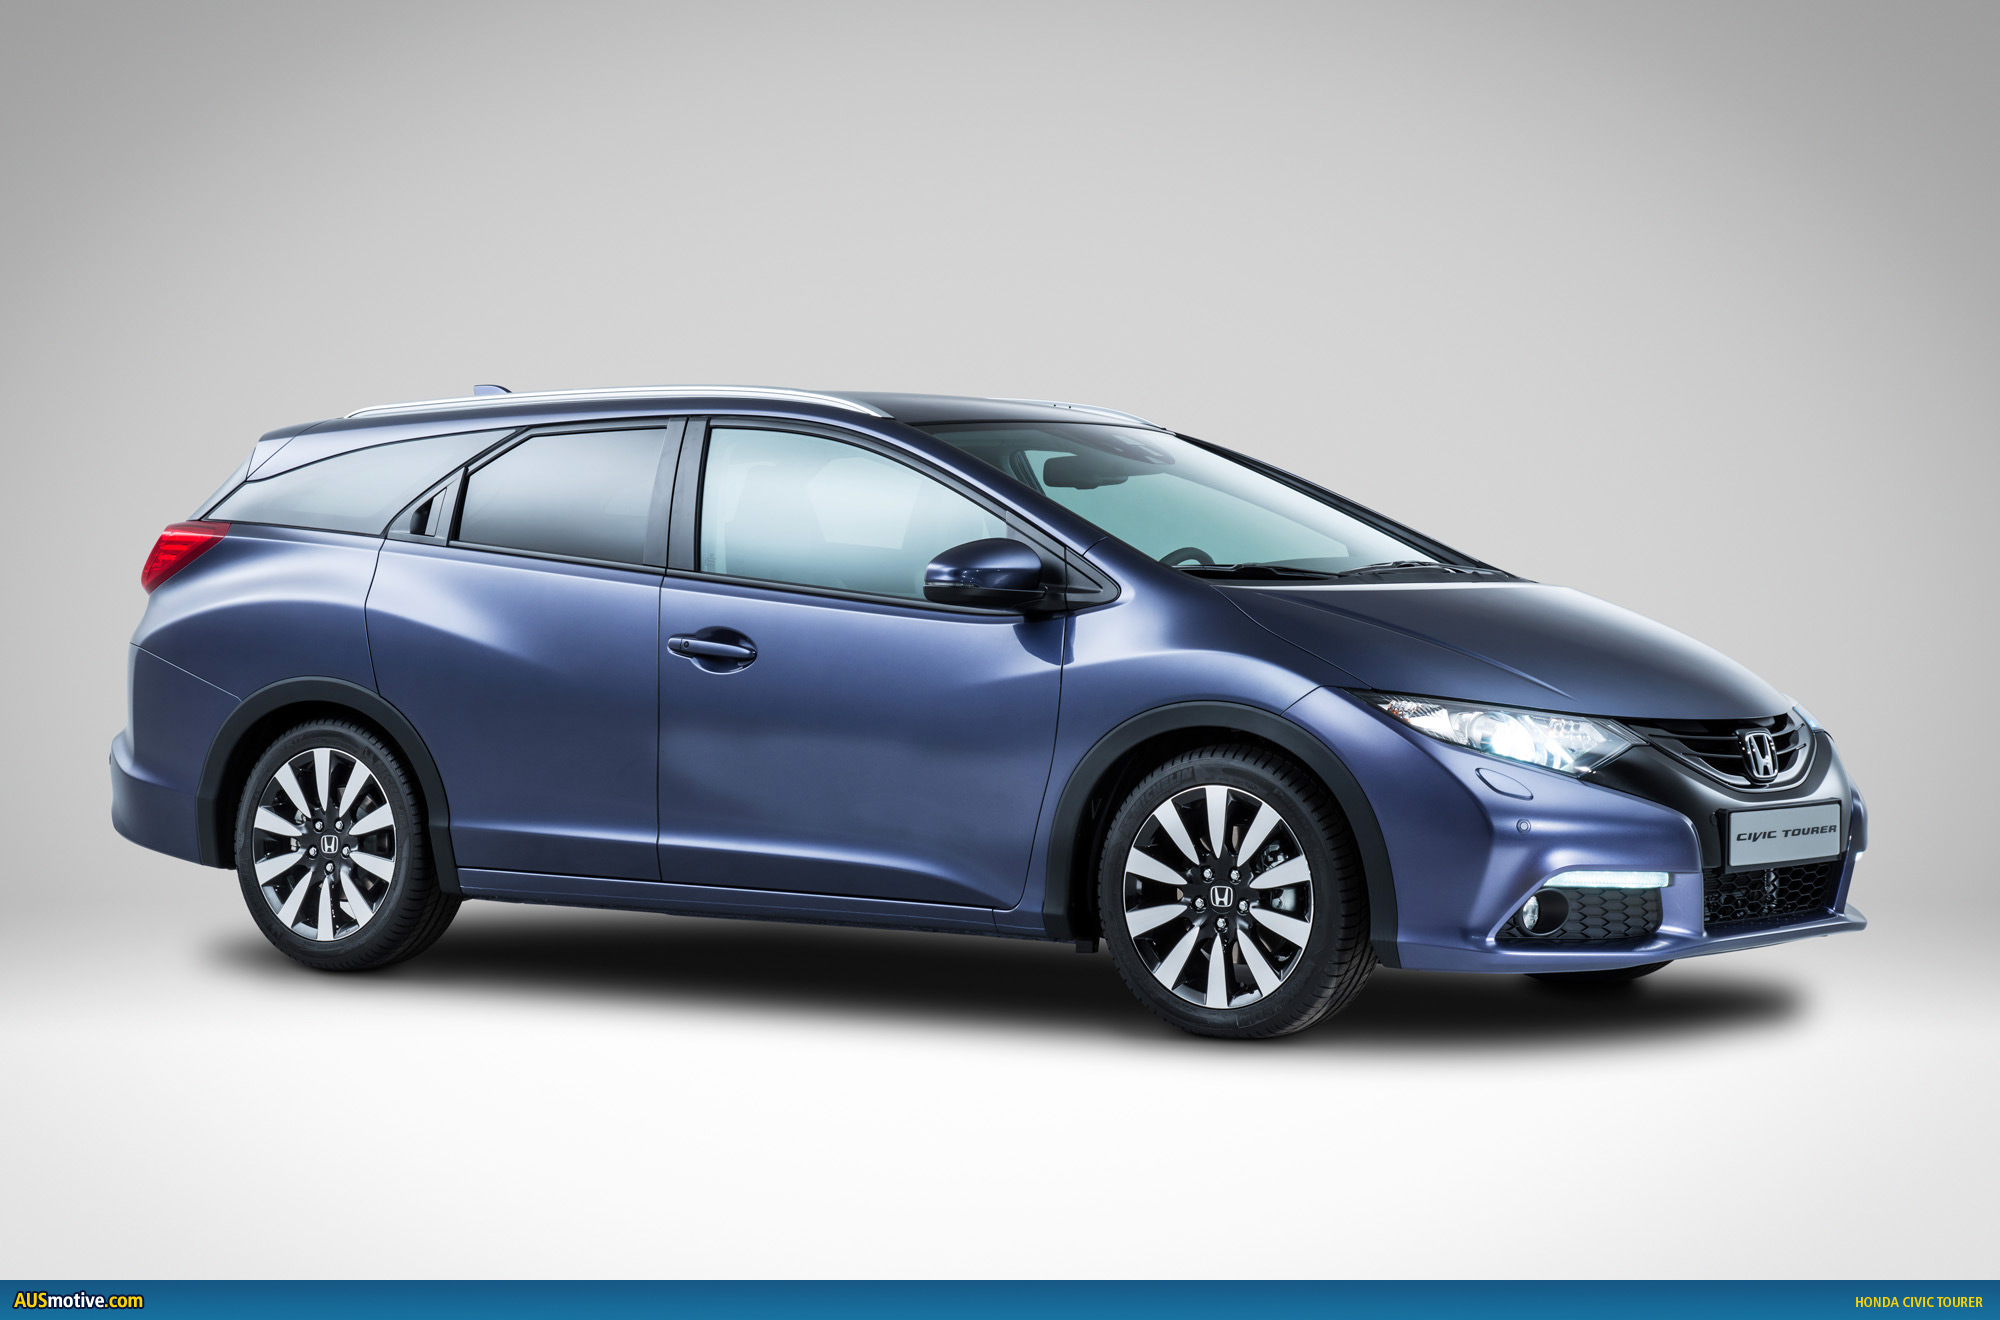 honda civic tourer wants to hang with the. Black Bedroom Furniture Sets. Home Design Ideas